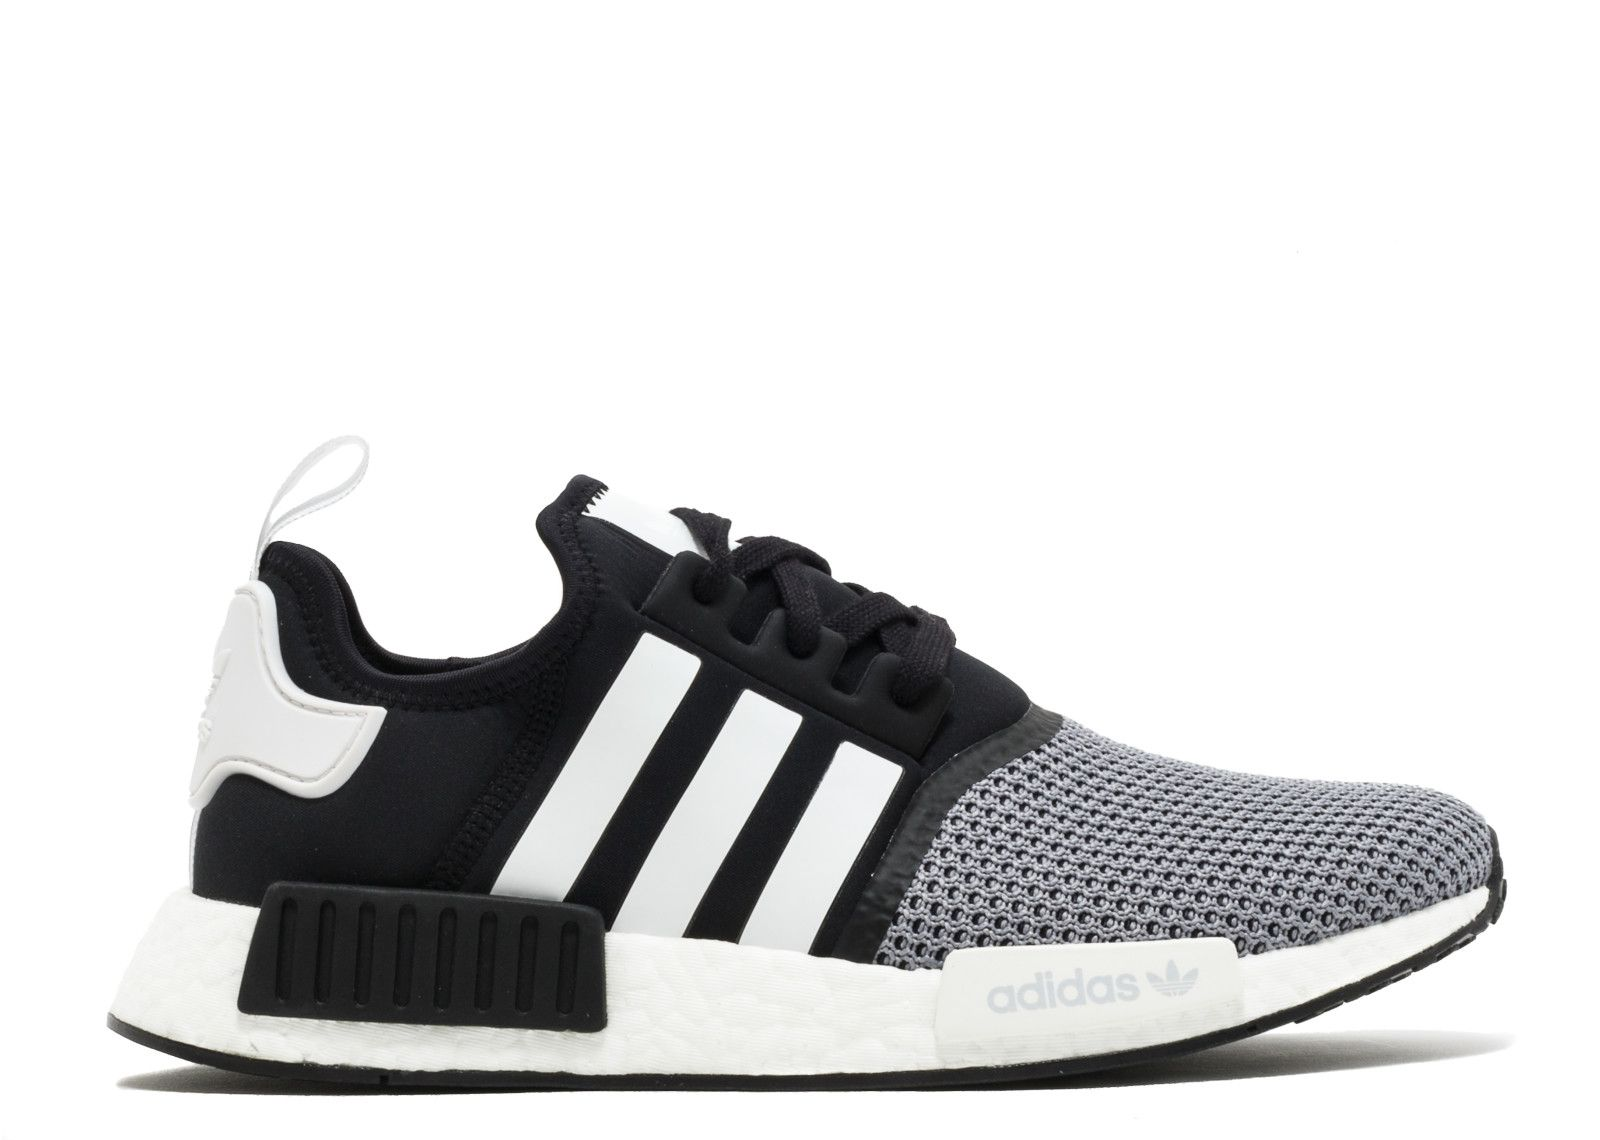 20172018 New Arrival NMD R1 JD SPORTS black grey white